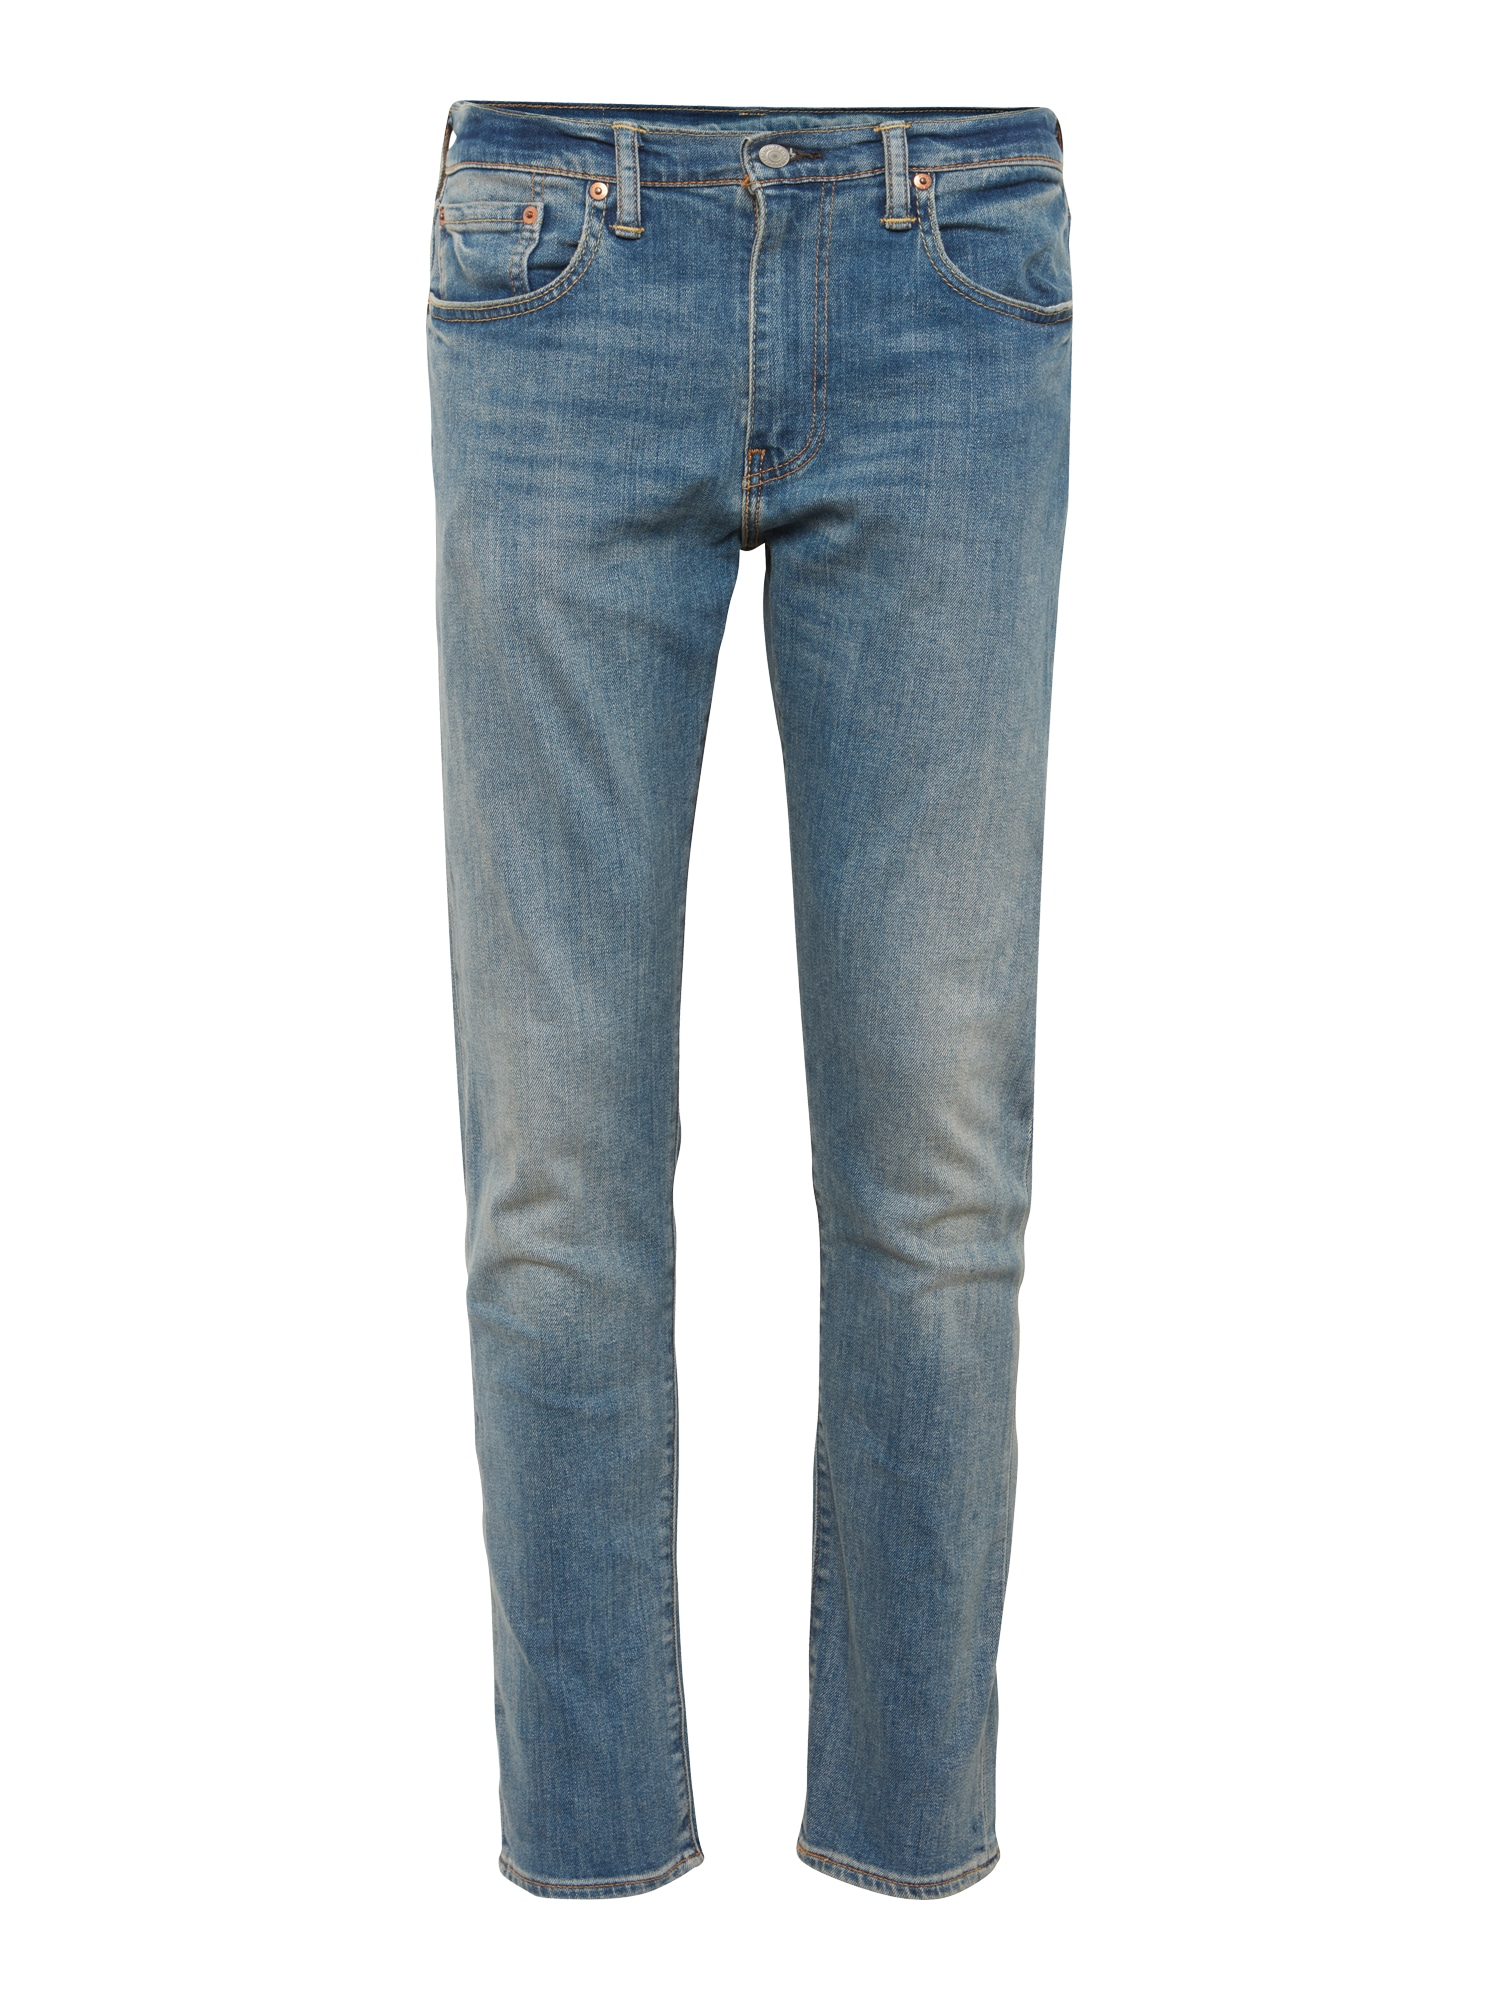 LEVI'S Heren Jeans 502™ REGULAR TAPER blue denim